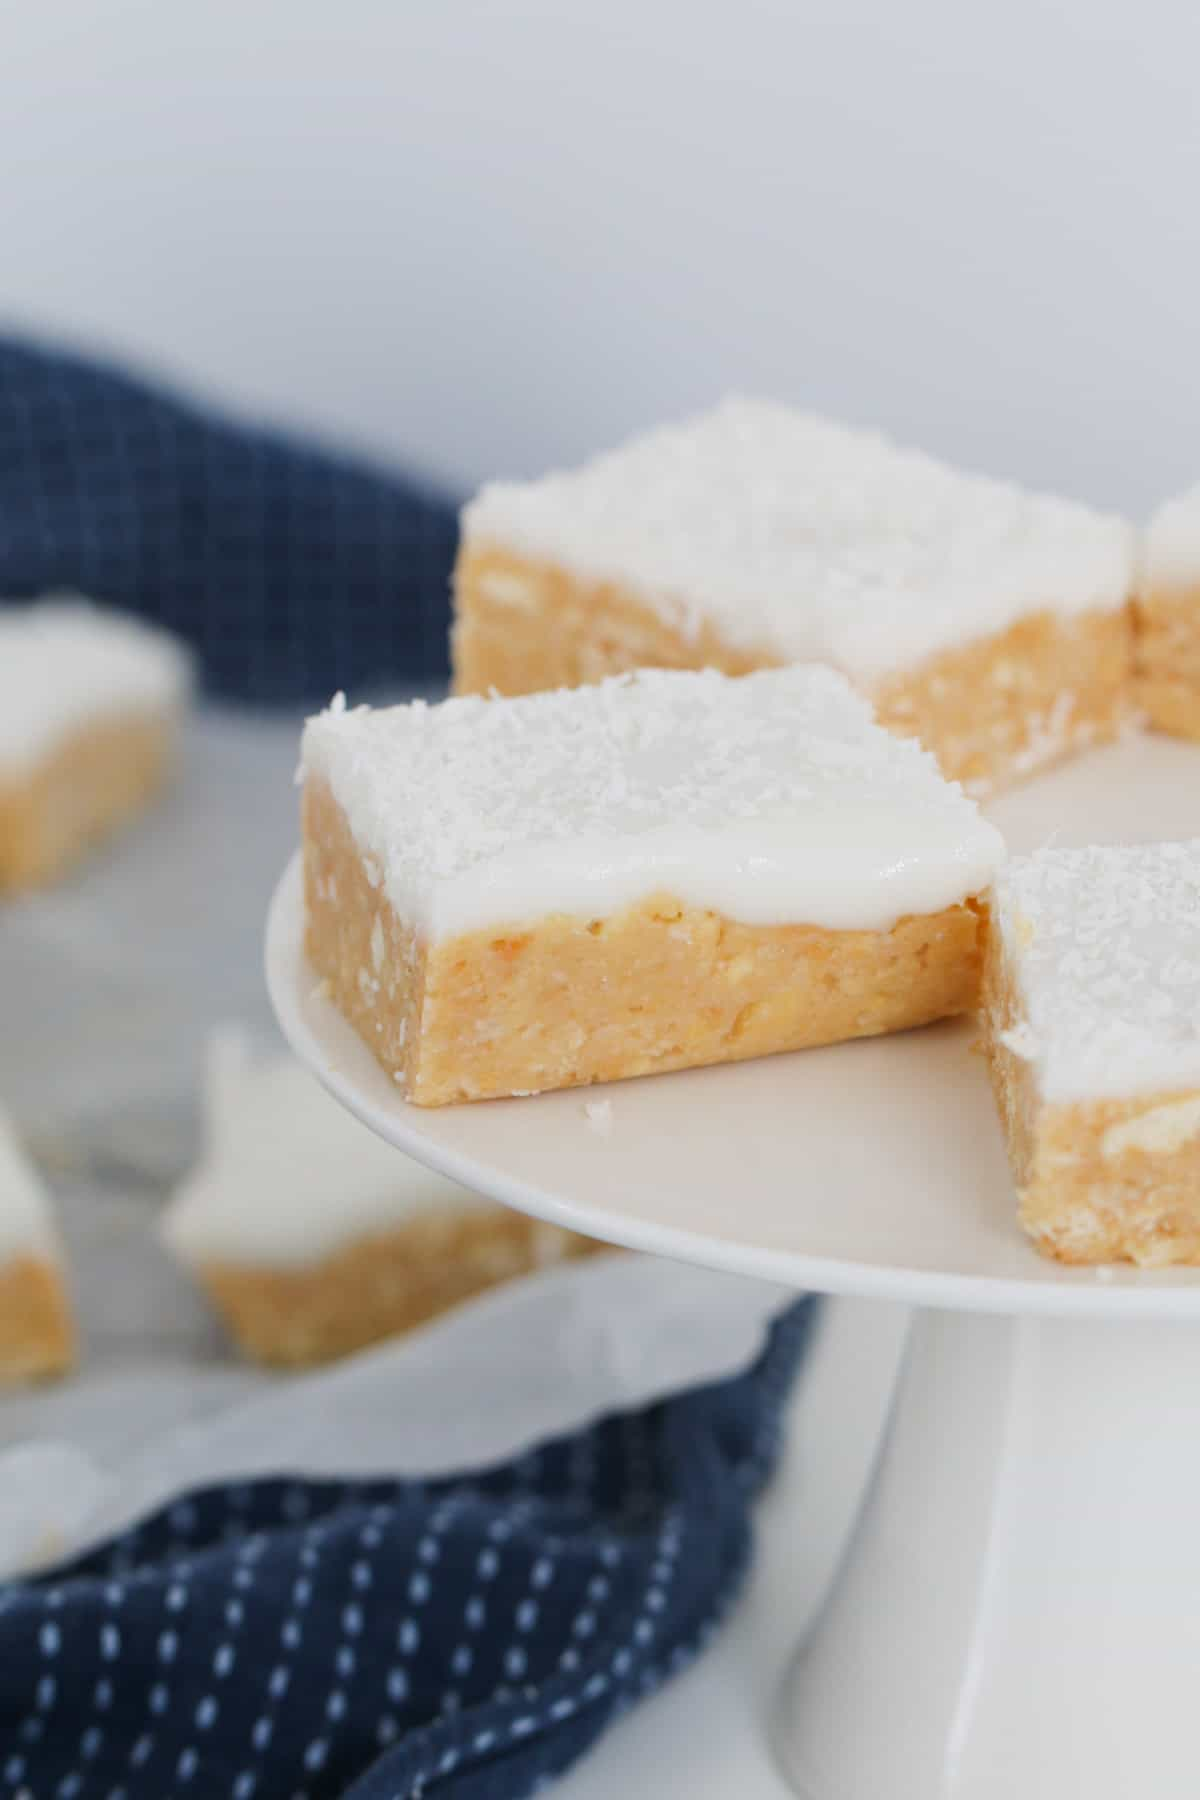 Pieces of coconut slice with lemon frosting on a cake stand.